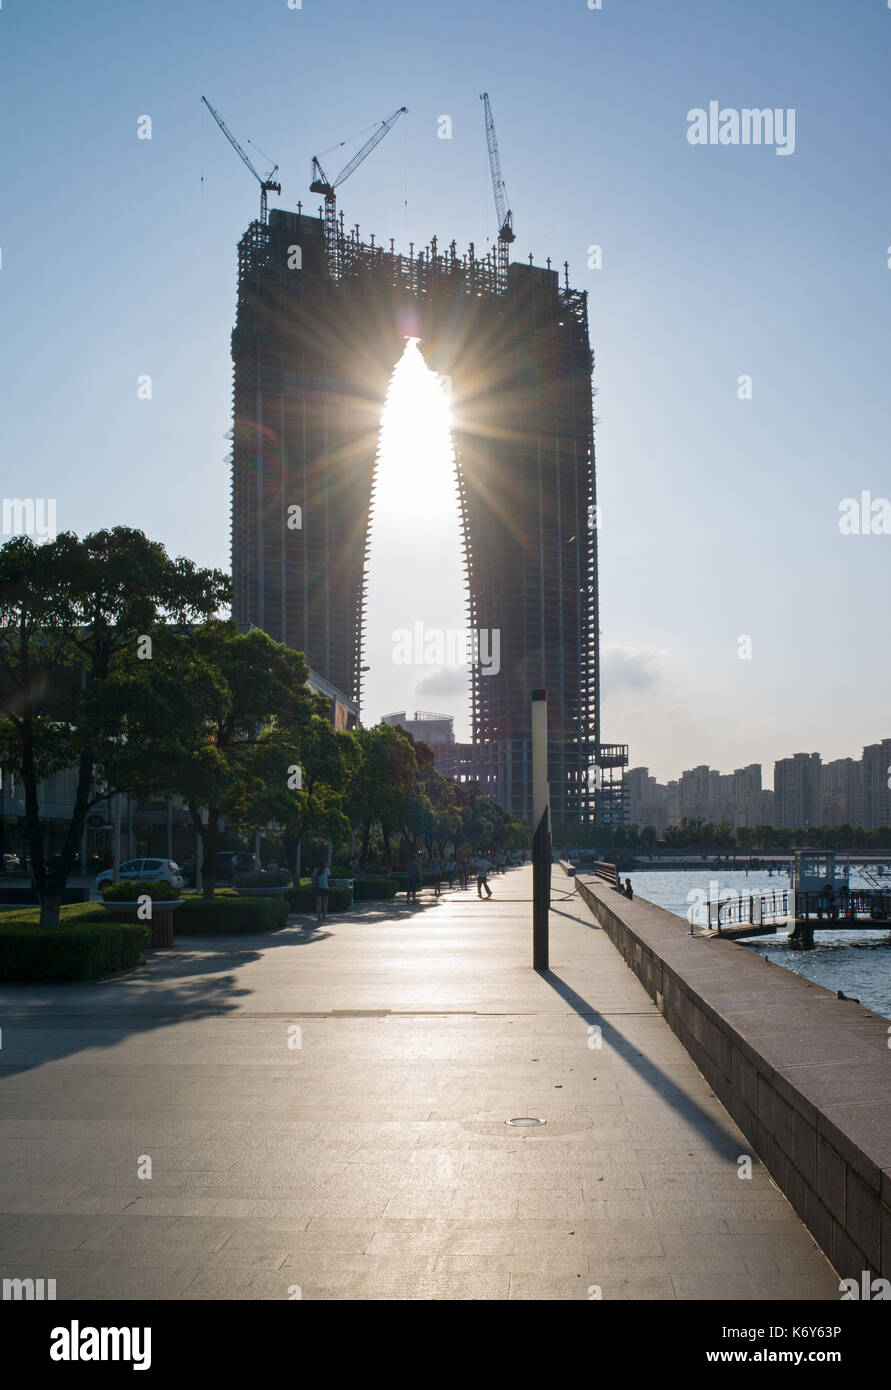 Gate of the Orient ('Pants') building under construction at Dongfangzhimen, Suzhou, China - Stock Image